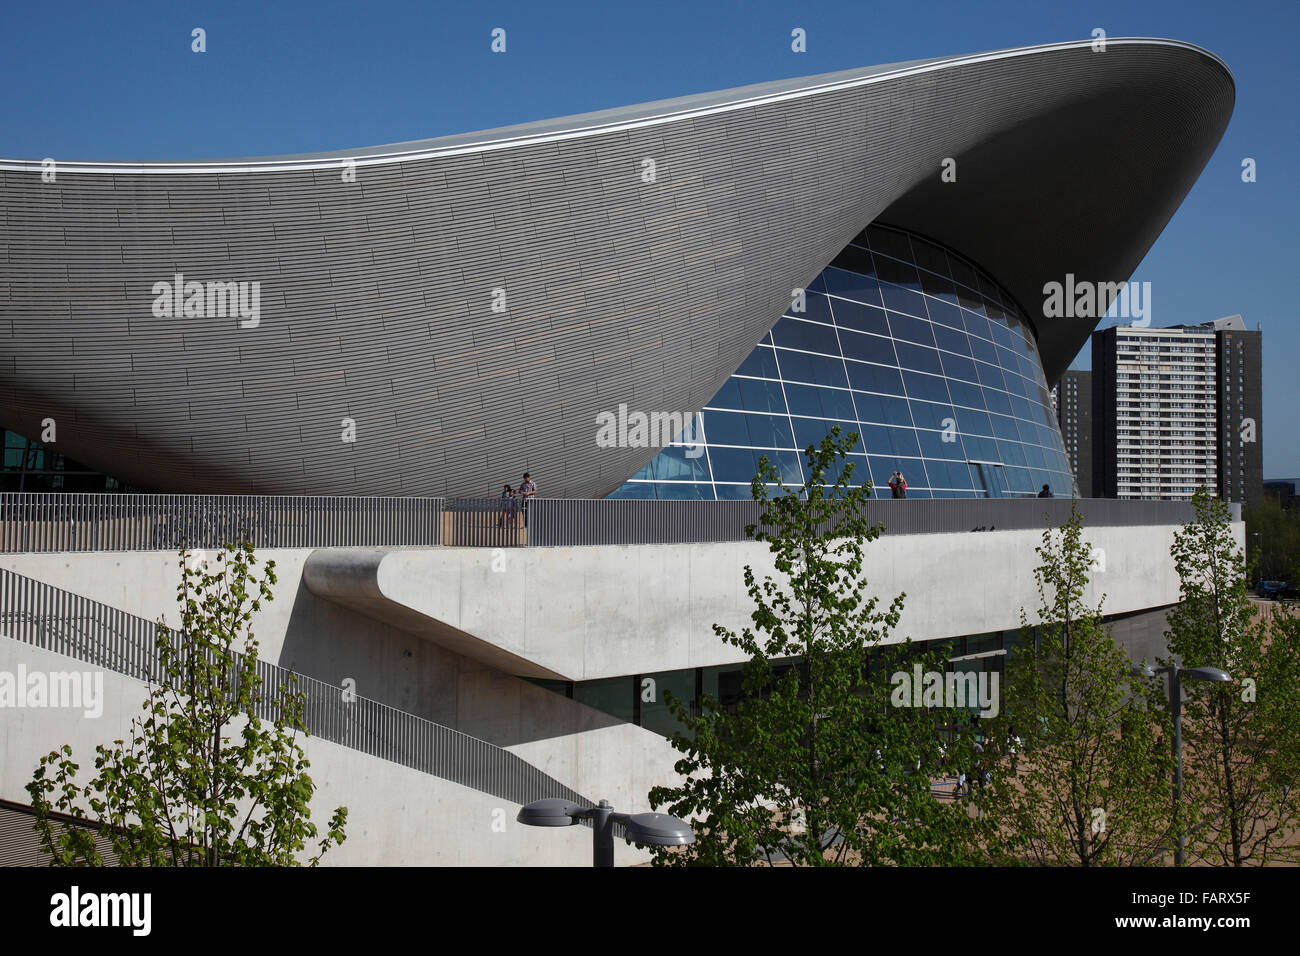 Swooping roof of the aquatics centre. - Stock Image